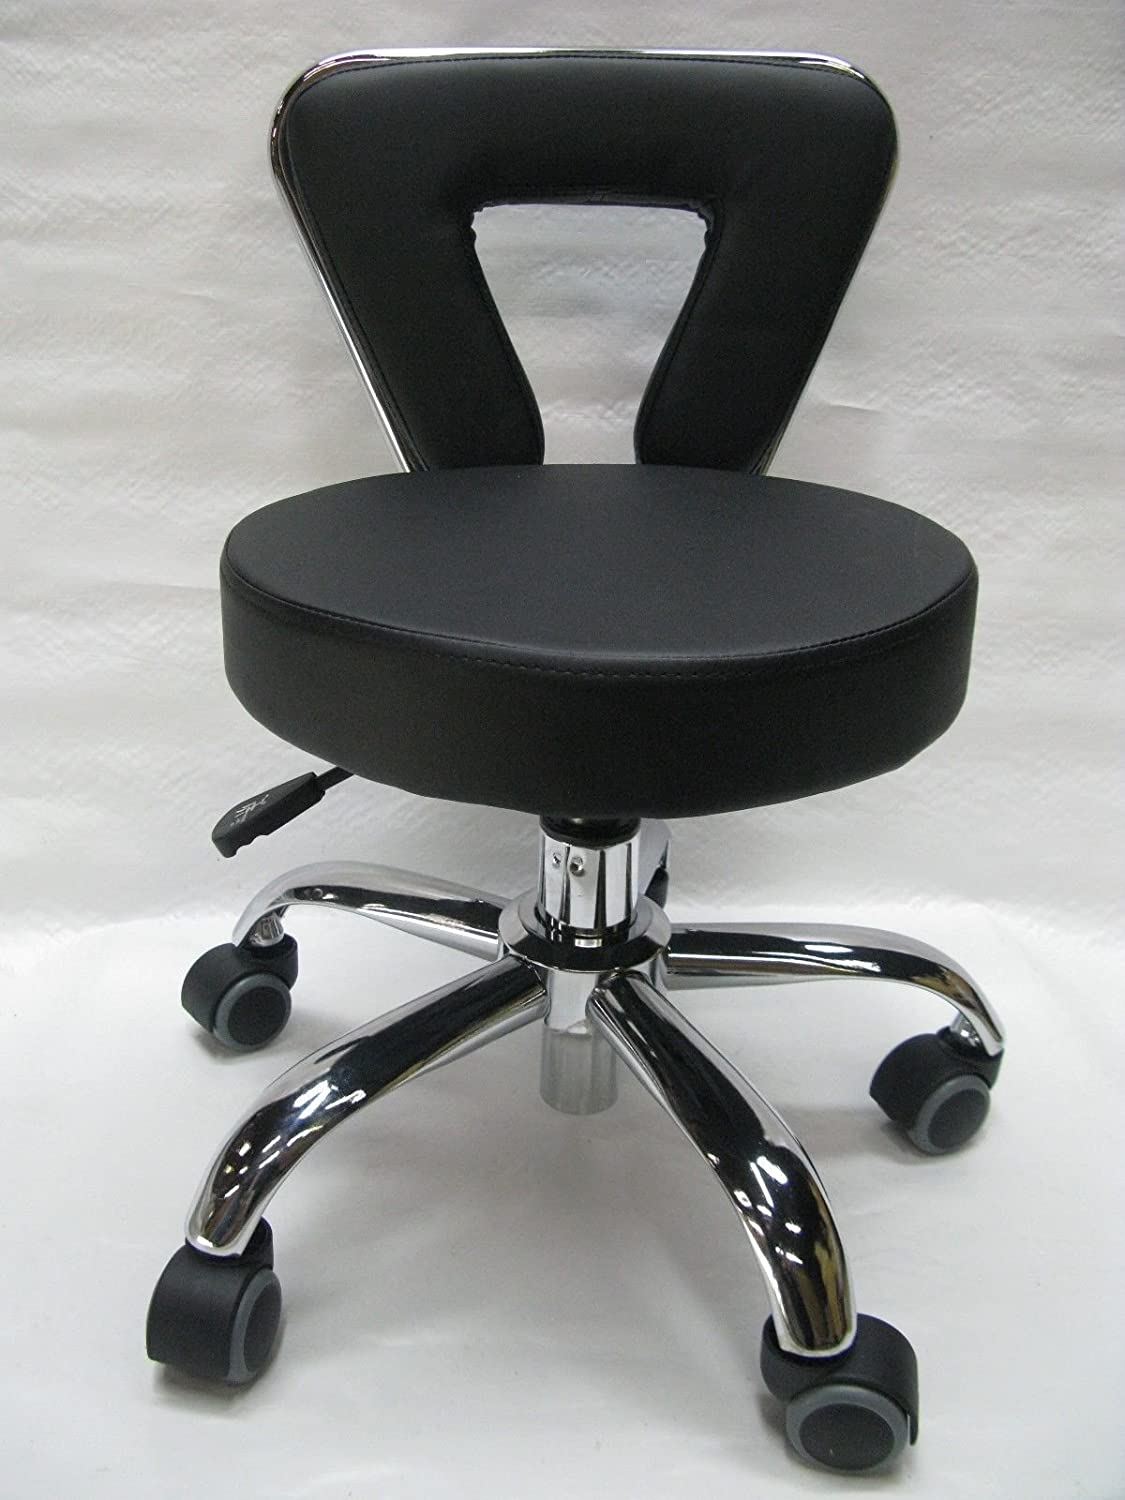 Amazon.com Spa Chair Pedicure Stool for Nail Hair Facial Technician (Short Black) Beauty & Amazon.com: Spa Chair Pedicure Stool for Nail Hair Facial ... islam-shia.org